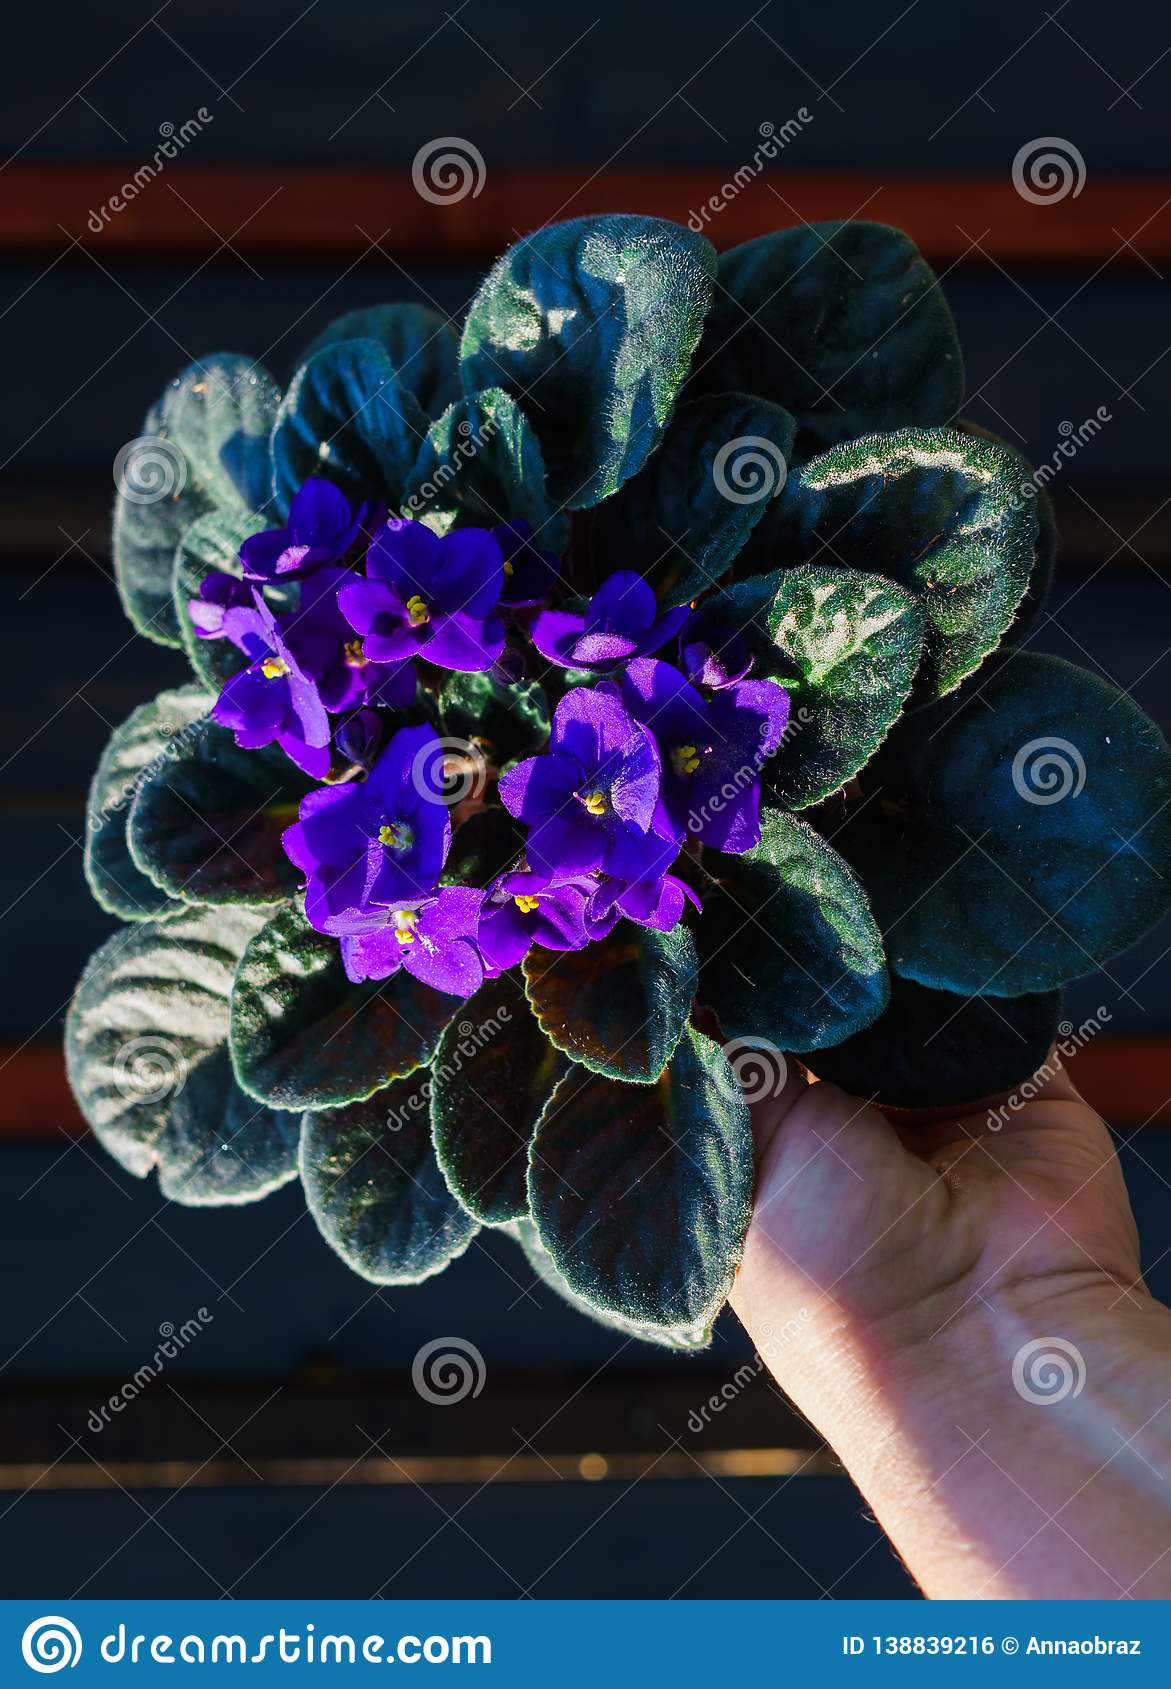 Saintpaulia,Purple African violet in a flowerpot on the background of wood planks